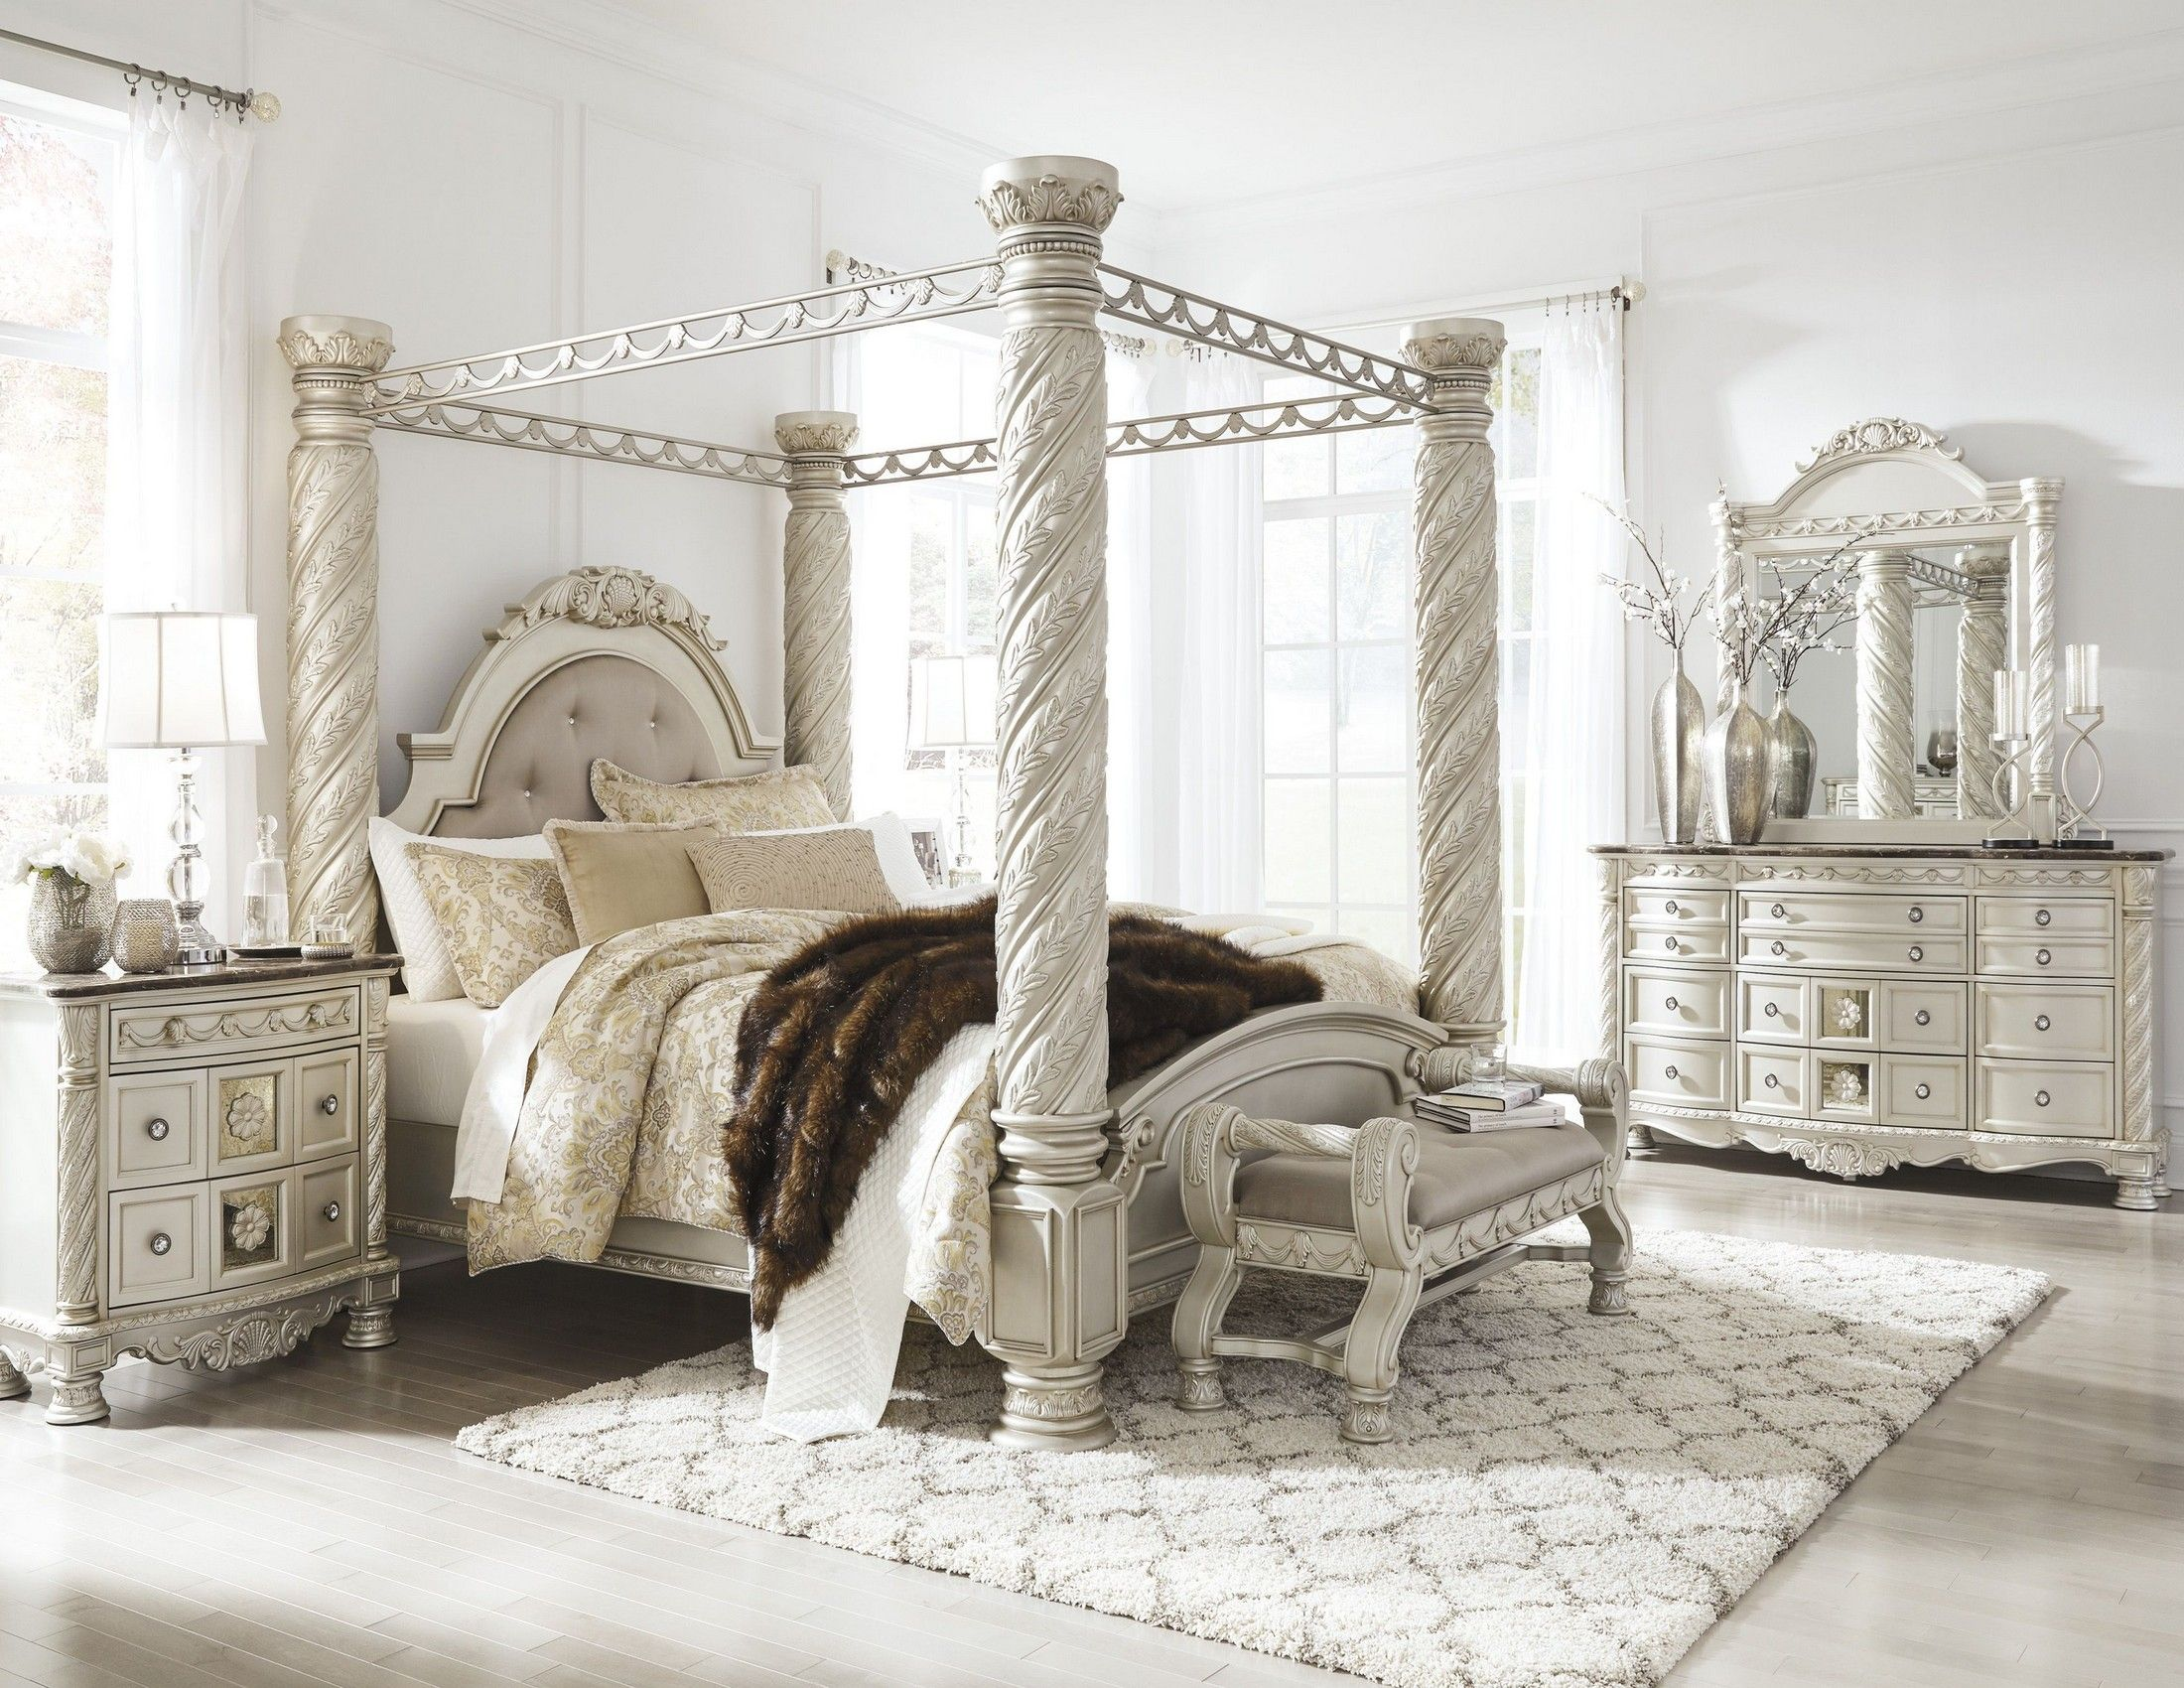 1stopbedrooms Com In 2021 Canopy Bedroom Sets Canopy Bedroom Bedroom Sets North shore bedroom set